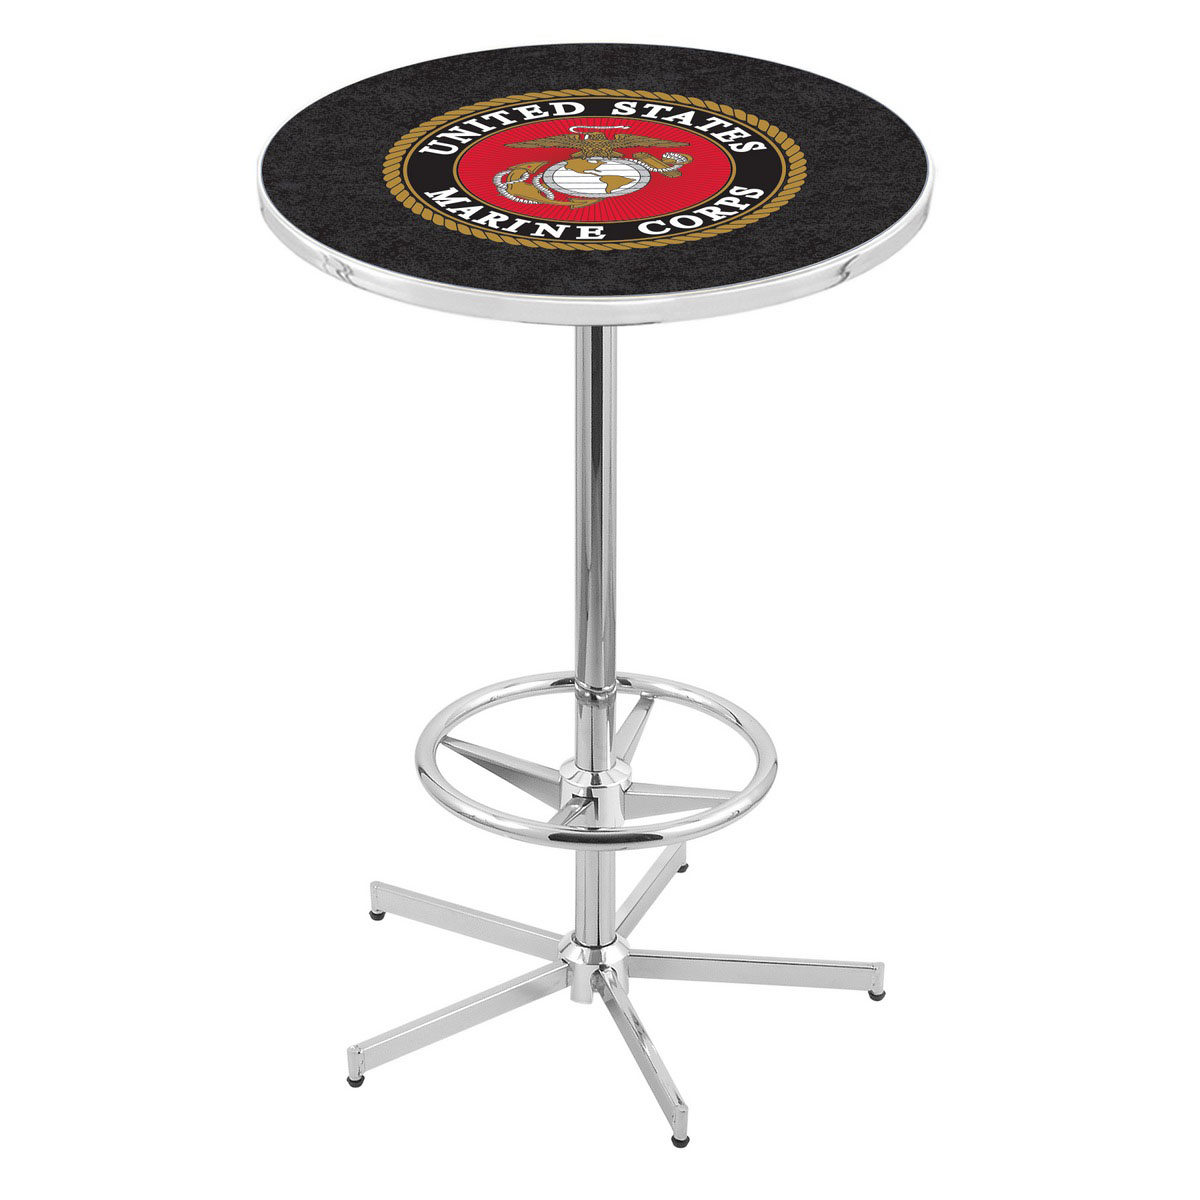 Longstanding Chrome U Marines Pub Table Product Photo